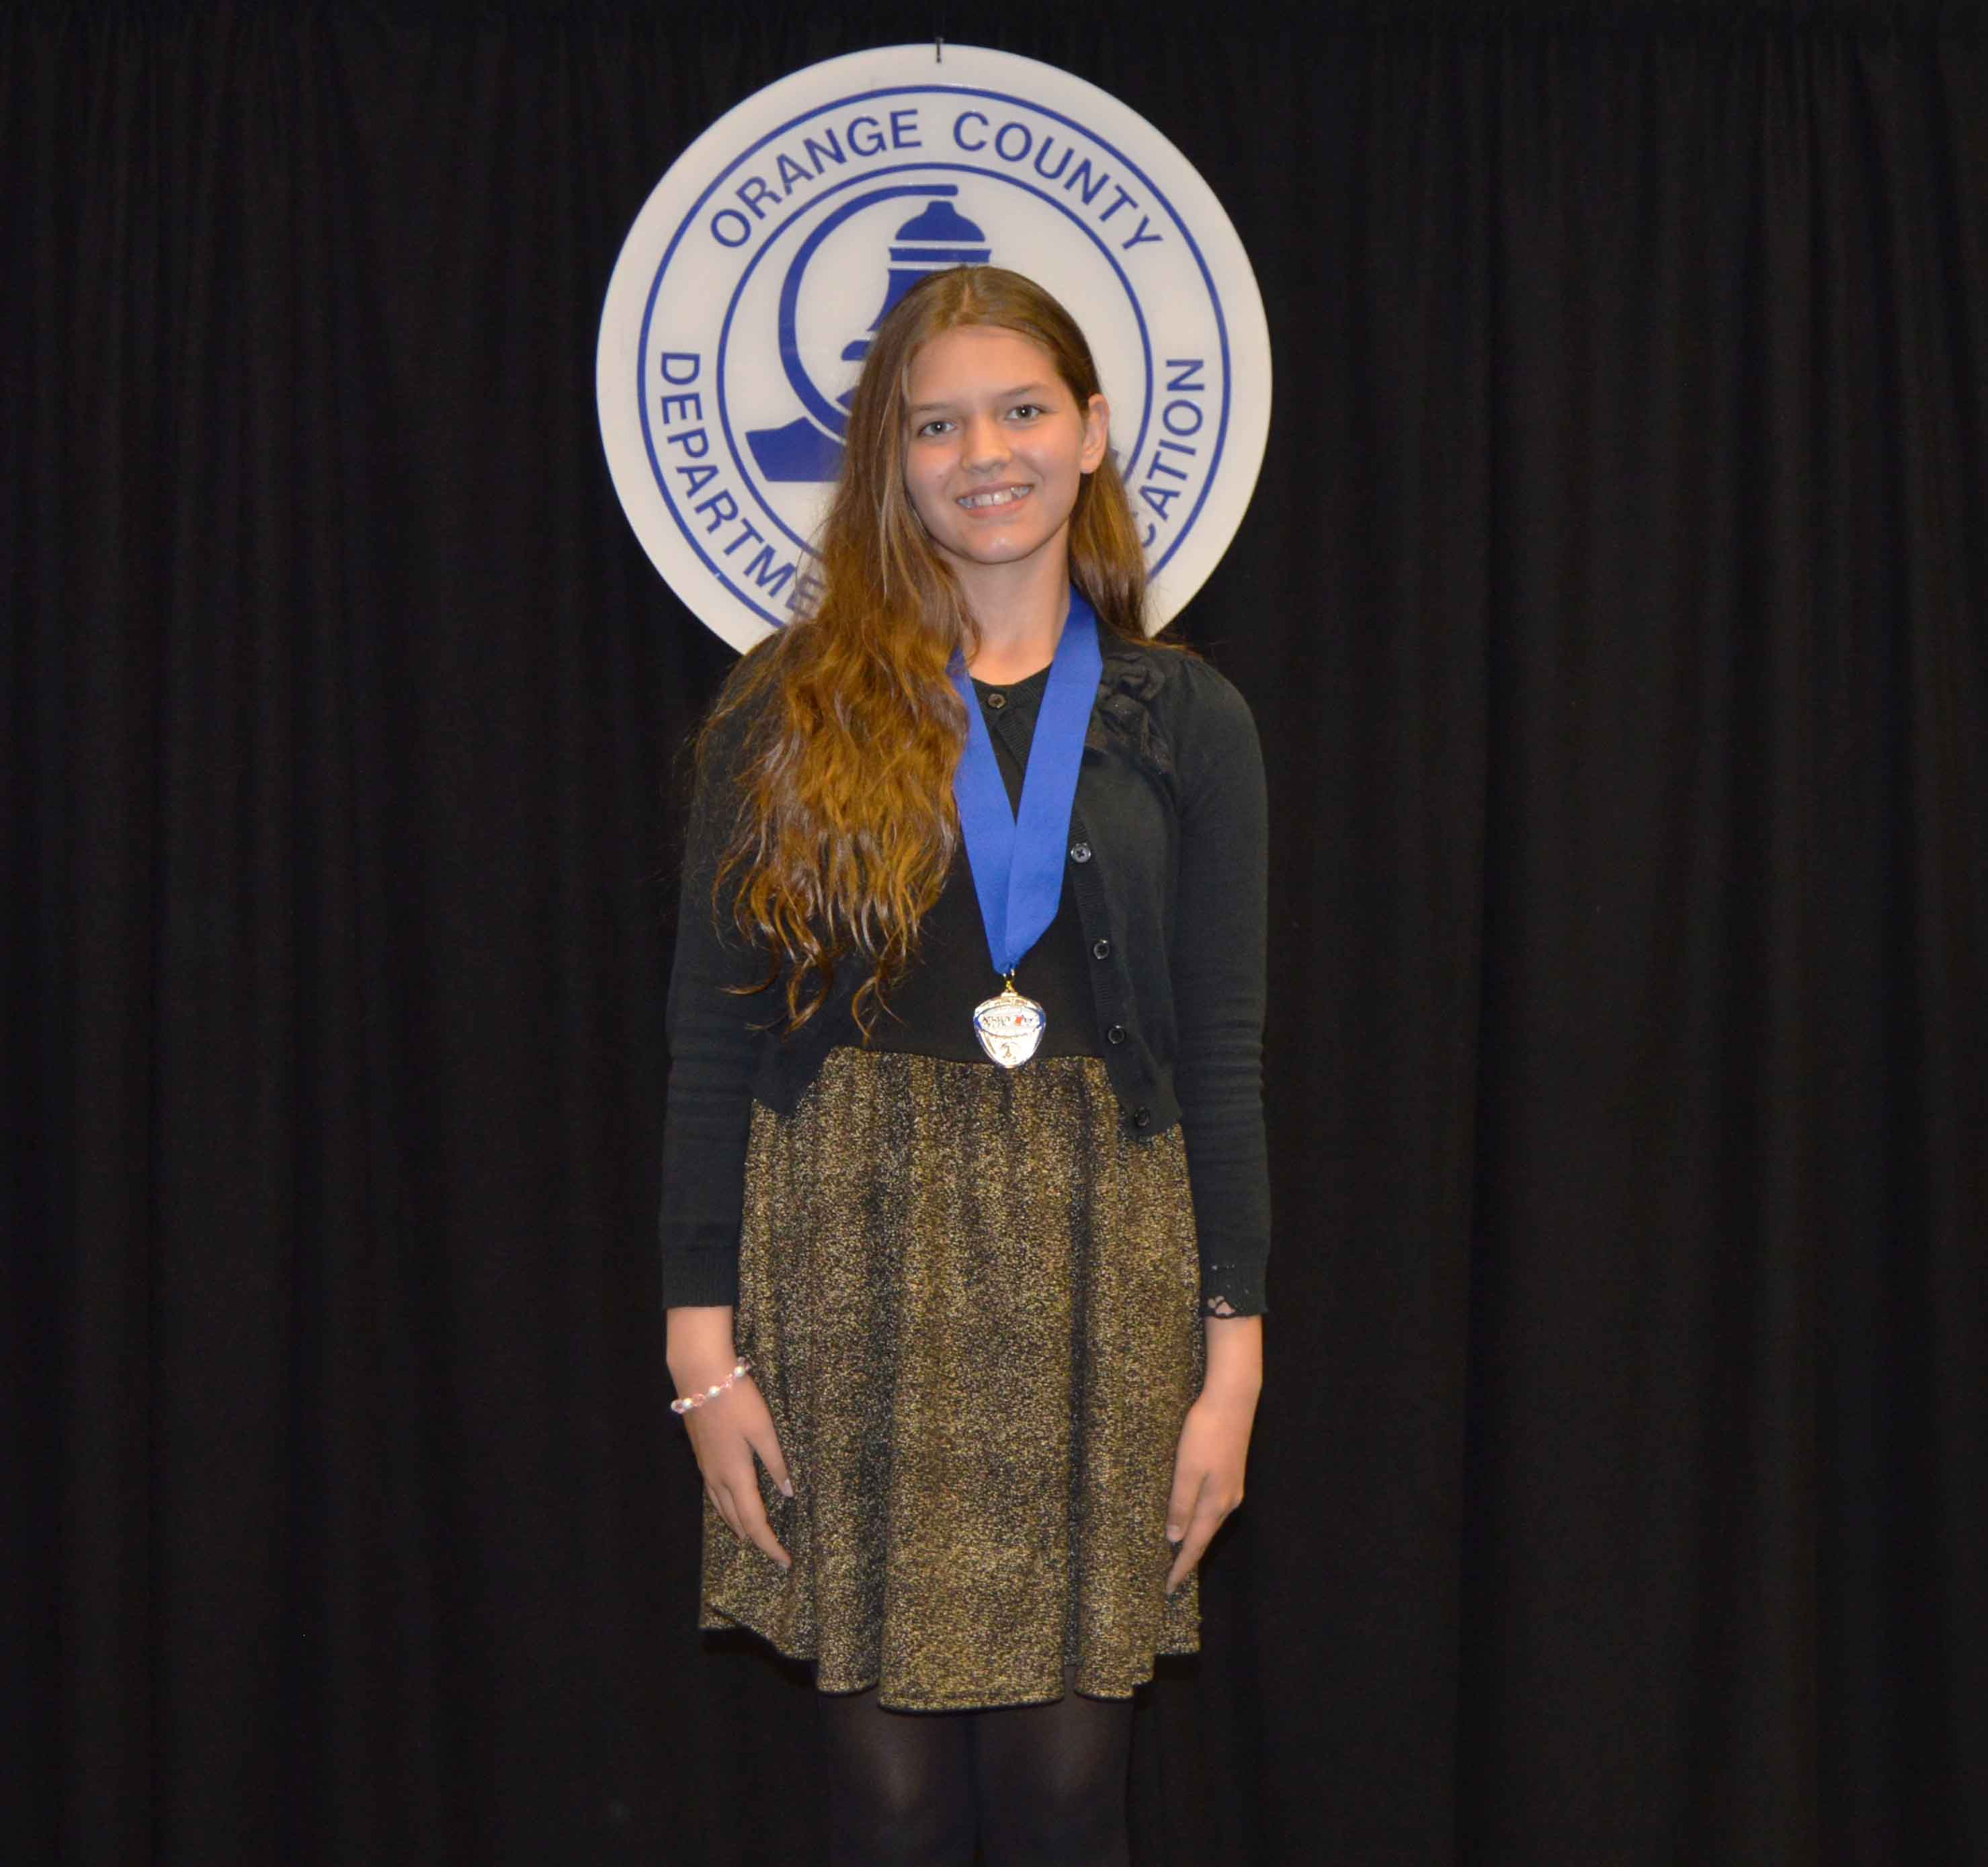 Freshman Naomi Hampton posed with a medal from the competition.